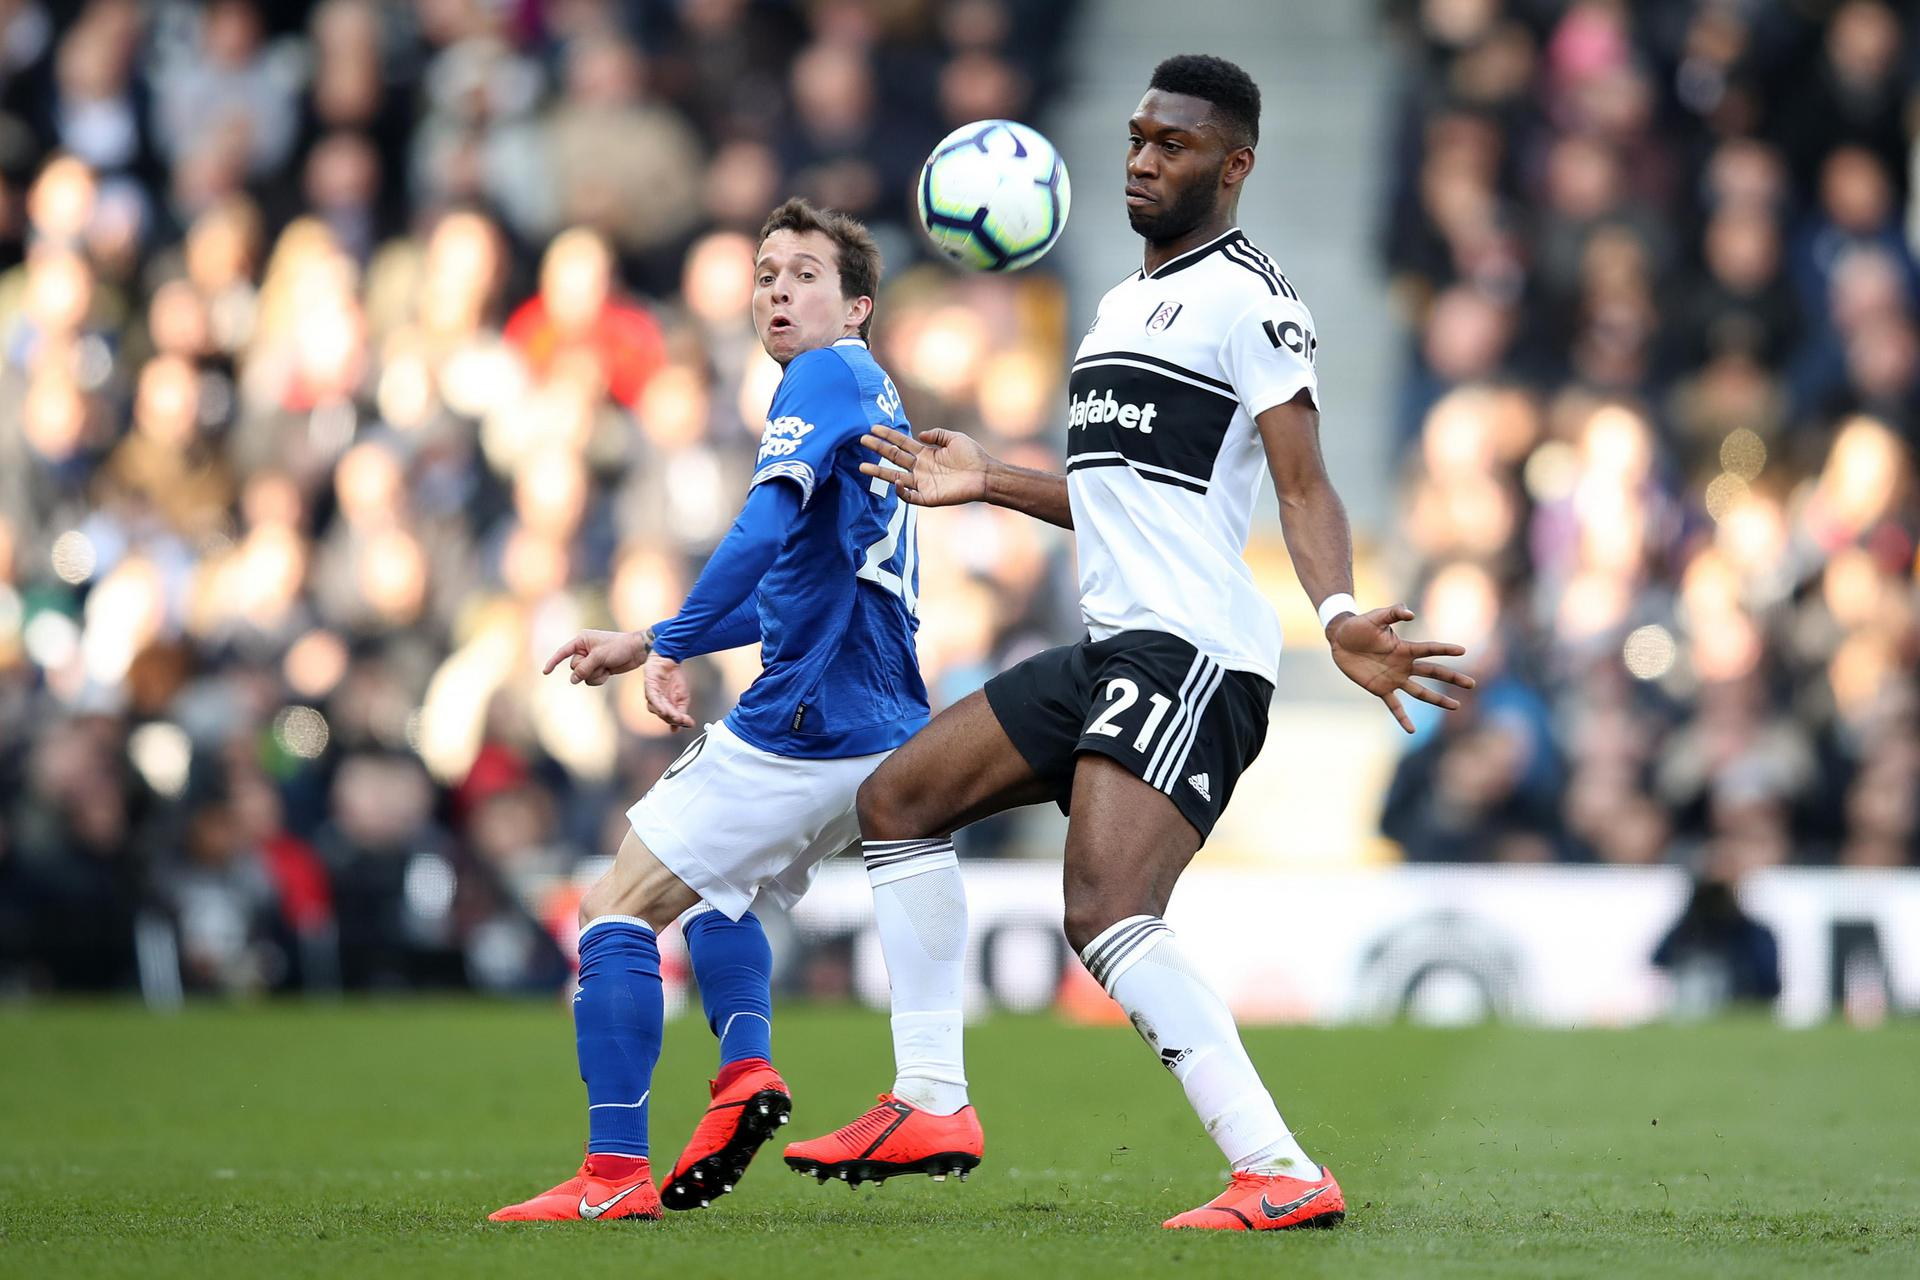 Tim Fosu-Mensah in action for Fulham.